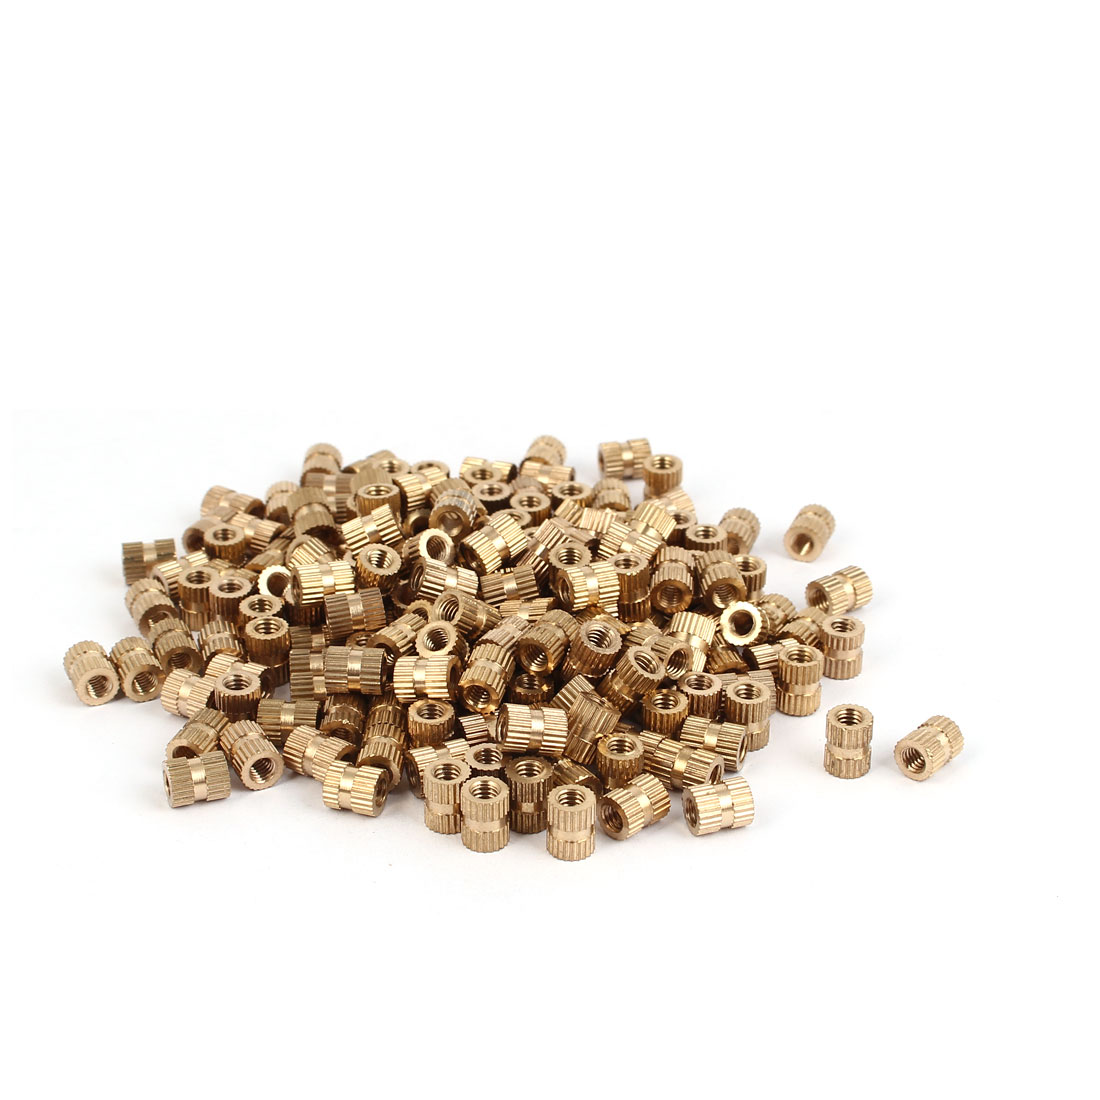 M4 x 8mm Female Thread Brass Knurled Threaded Round Insert Embedded Nuts 200PCS